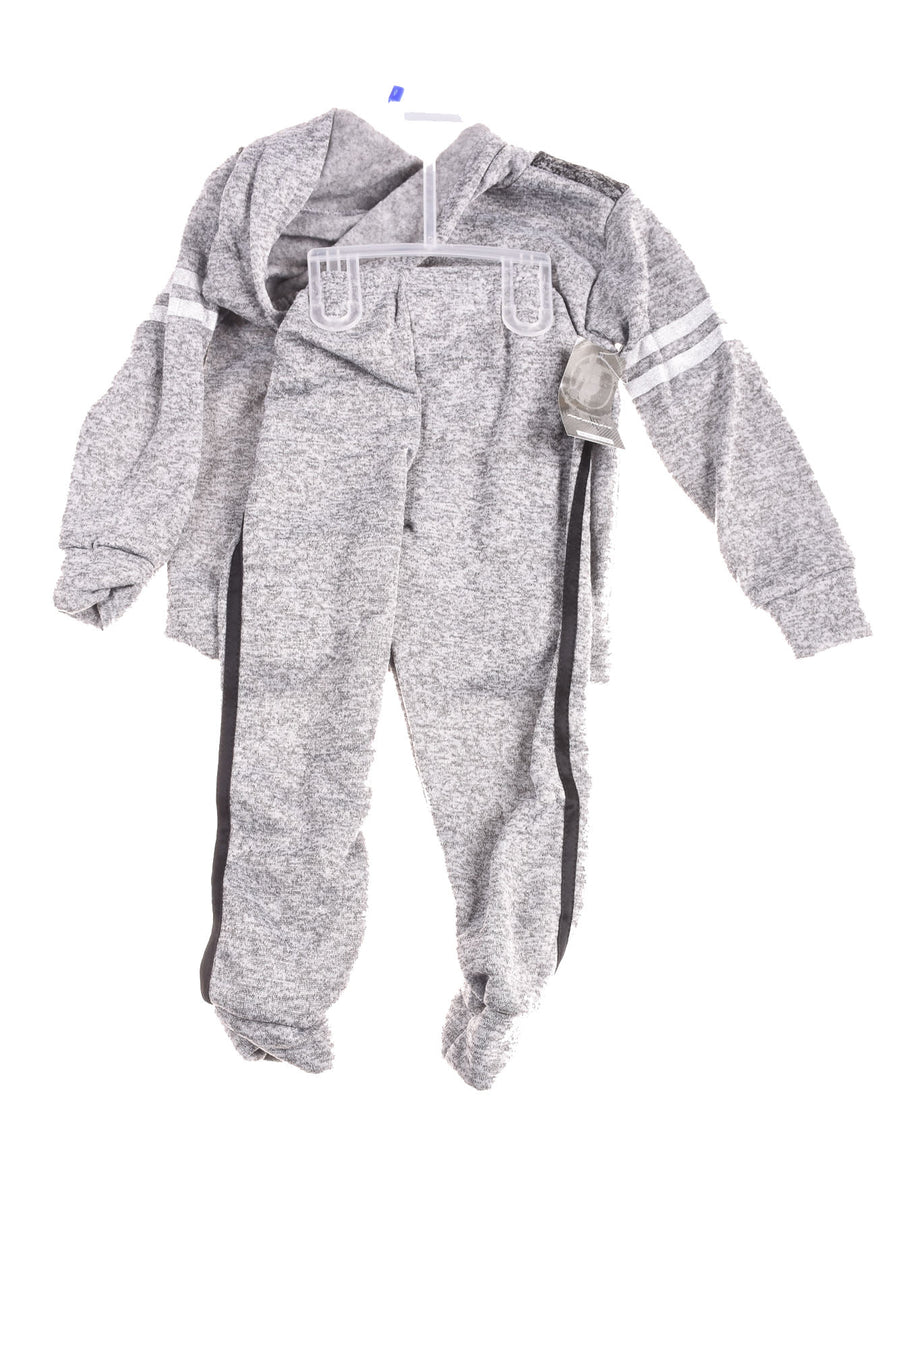 Toddler Boy's Outfit By Pro Athlete